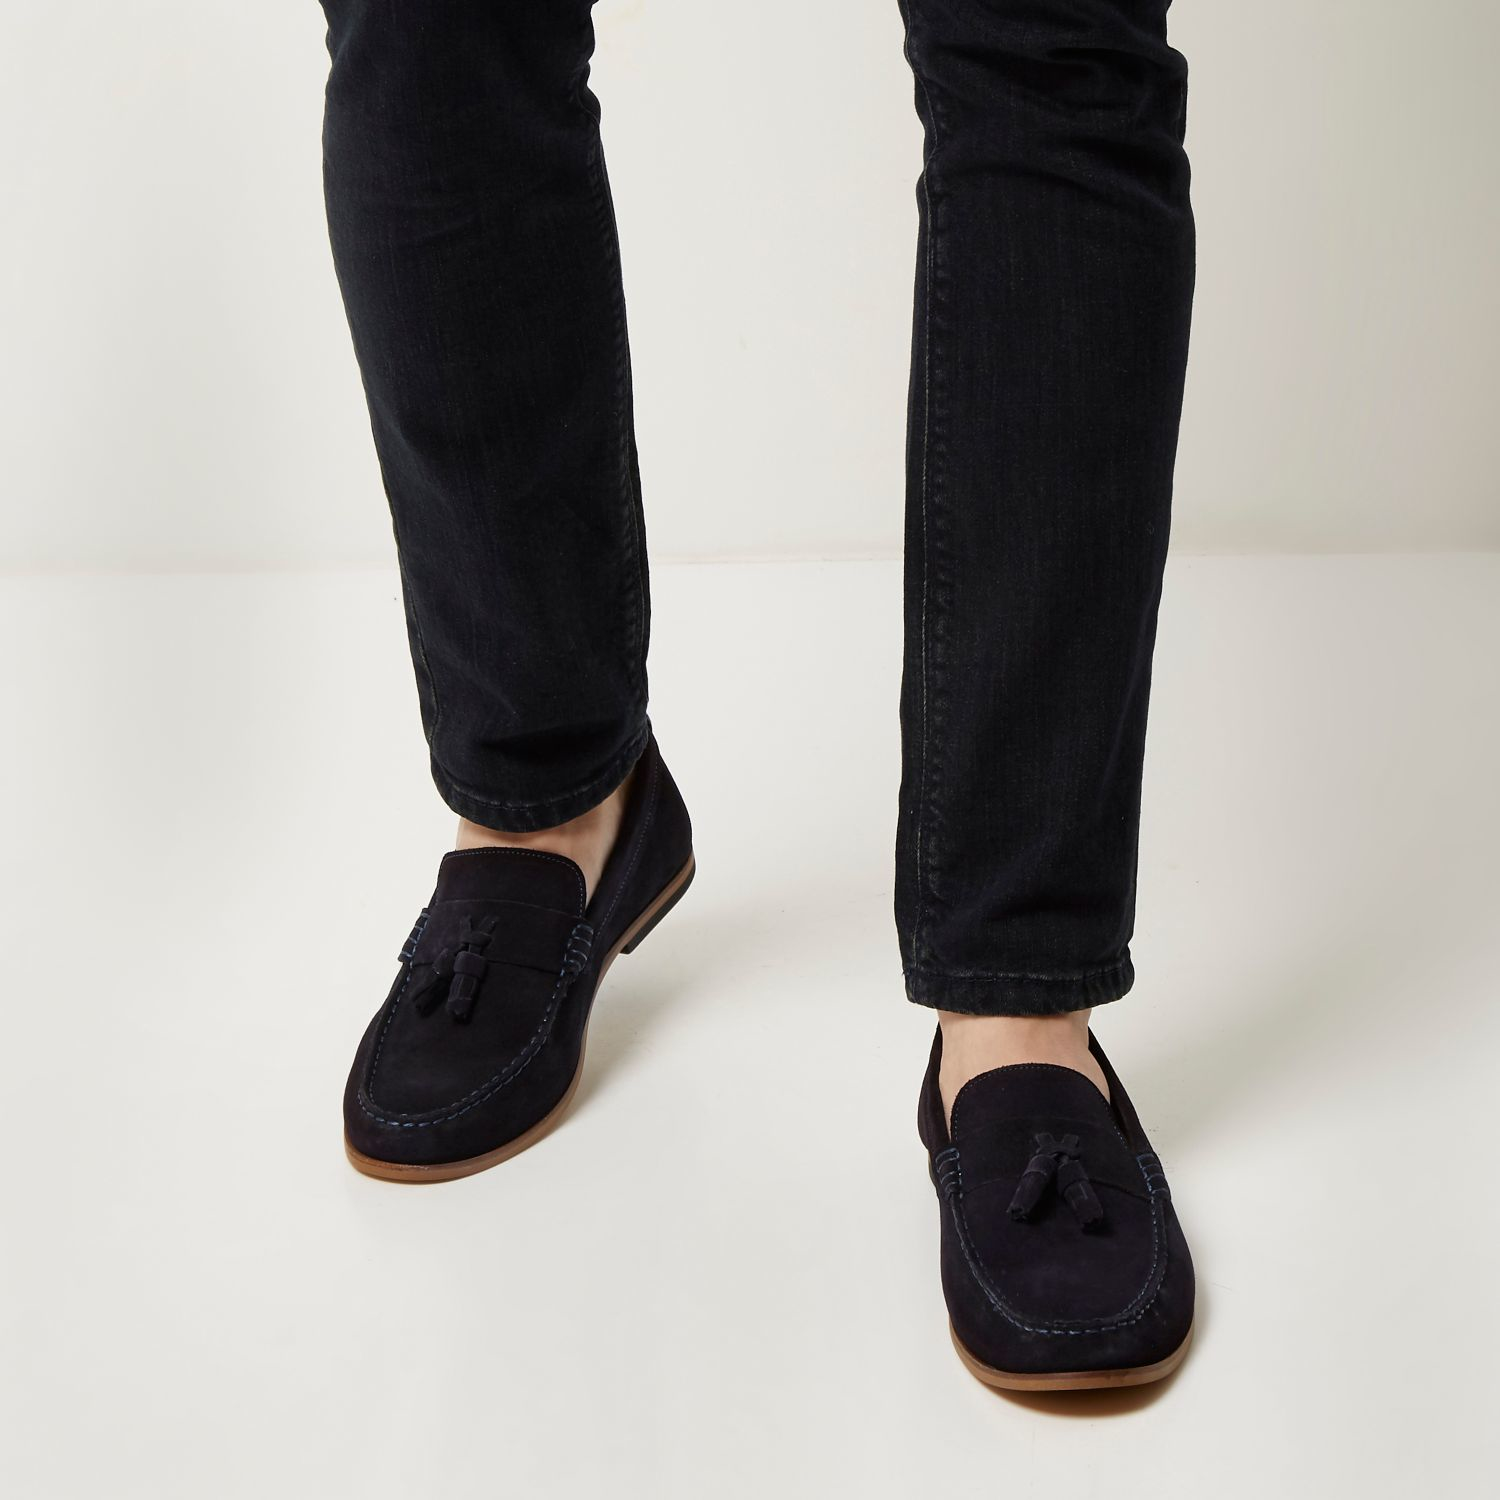 Mens Black suede woven tassel loafers River Island Marketable For Sale Clearance Clearance Exclusive uZXwO0nv